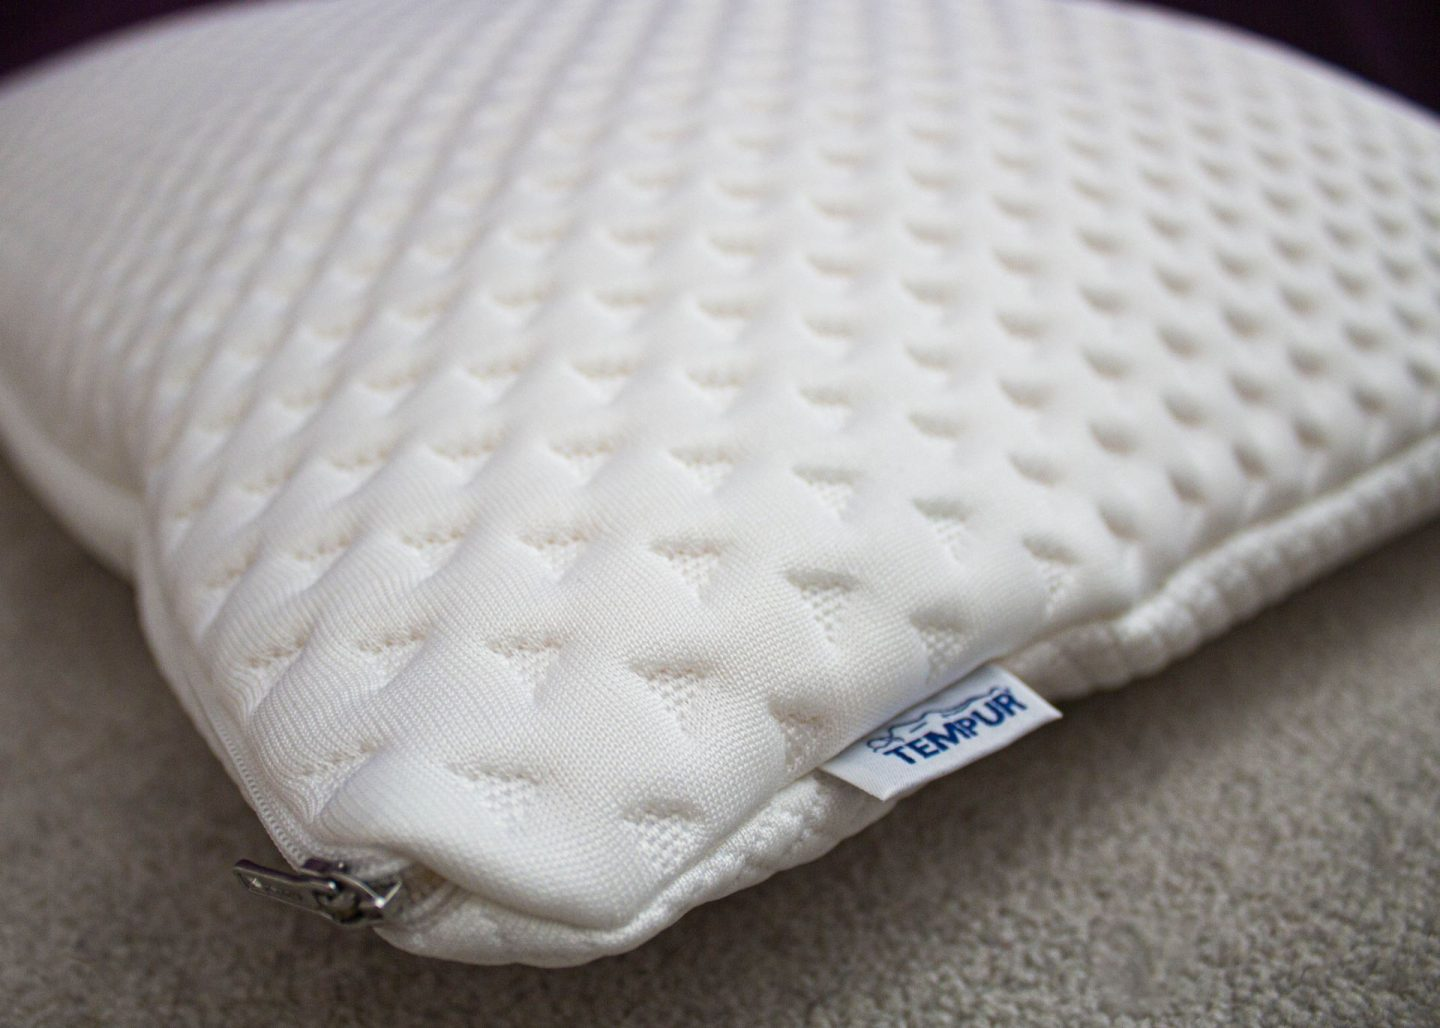 TEMPUR® pillow, TEMPUR® Tempur pillow